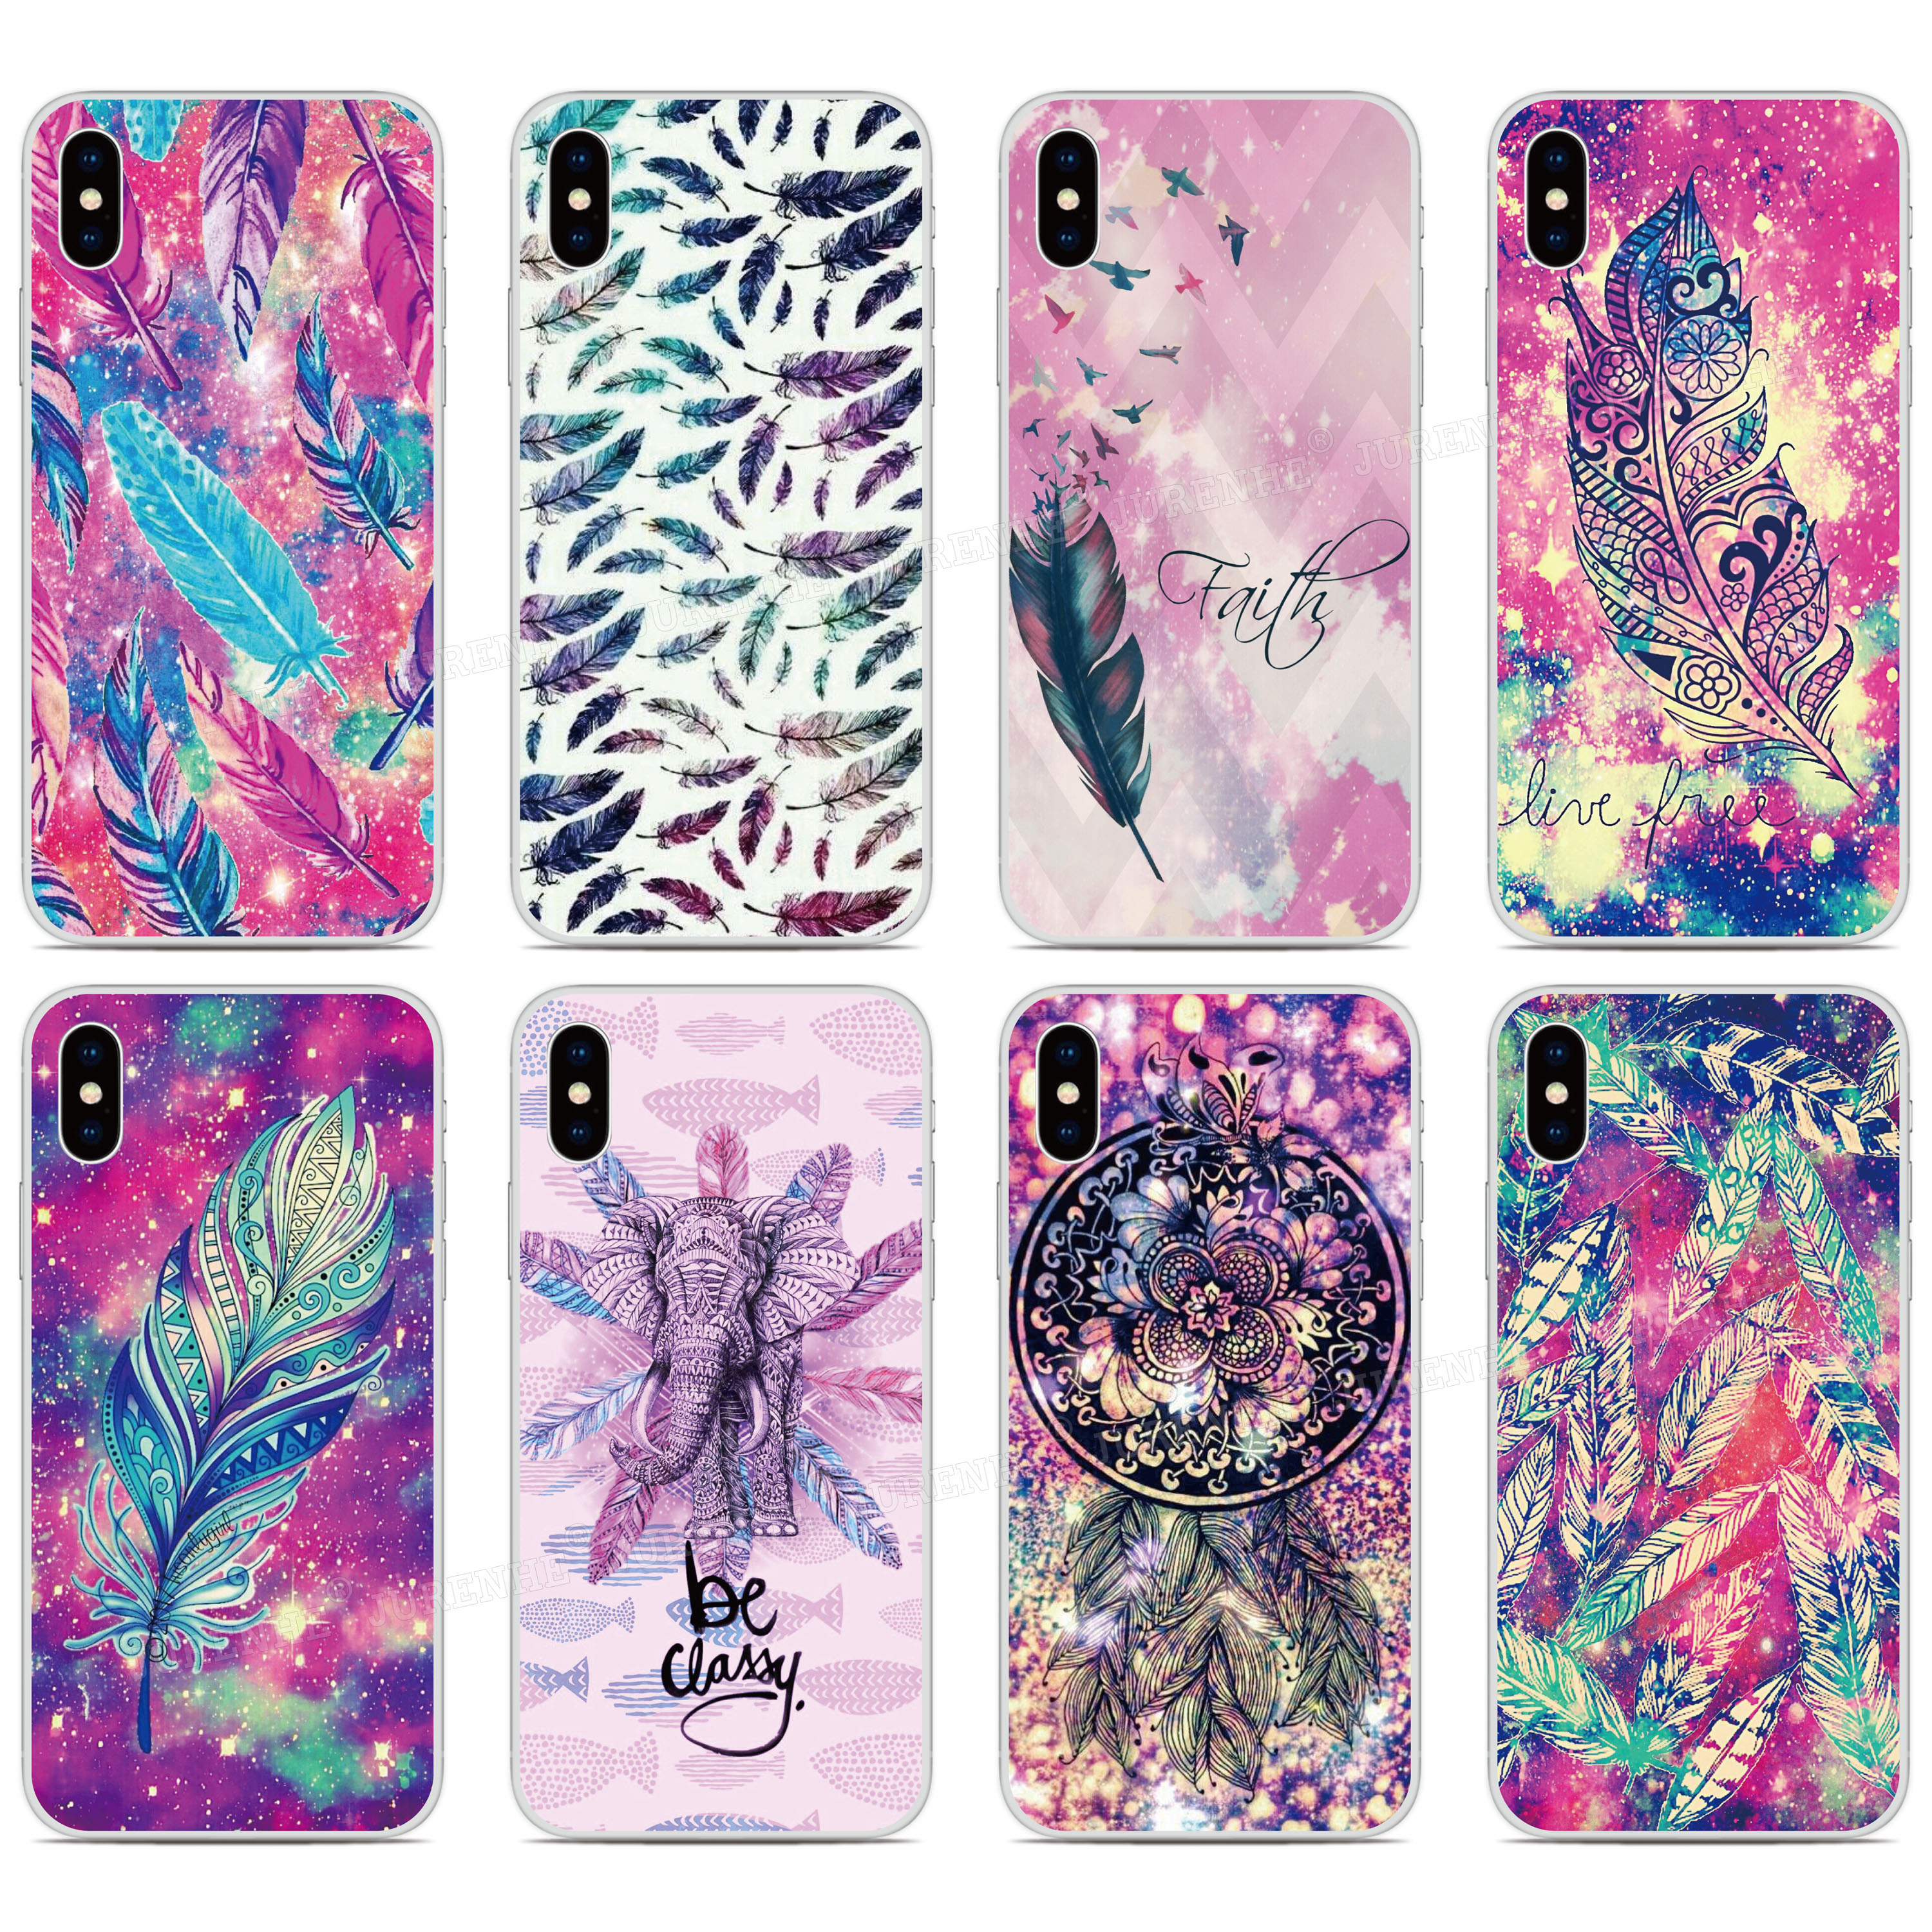 Print Soft TPU Fundas Colorful Feather Phone Case For <font><b>Leagoo</b></font> <font><b>M8</b></font> <font><b>Pro</b></font> / S11 S9 S8 <font><b>Pro</b></font> T8S M11 M13 Power 2 / Power 5 Silicone Cover image